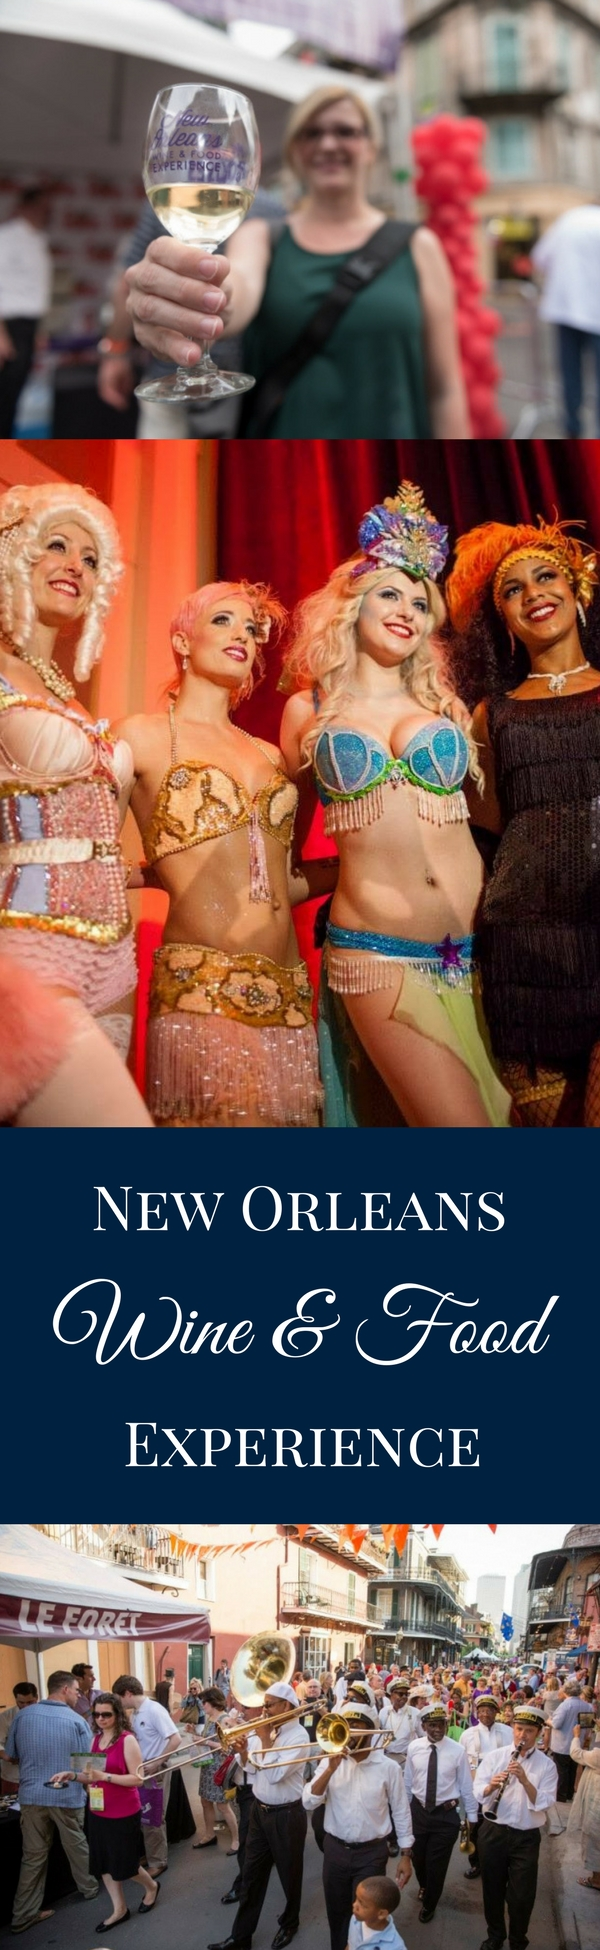 The annual New Orleans Wine and Food Experience (NOWFE) is a literal and figurative feast for the senses, perfect for wine-lovers and foodies.